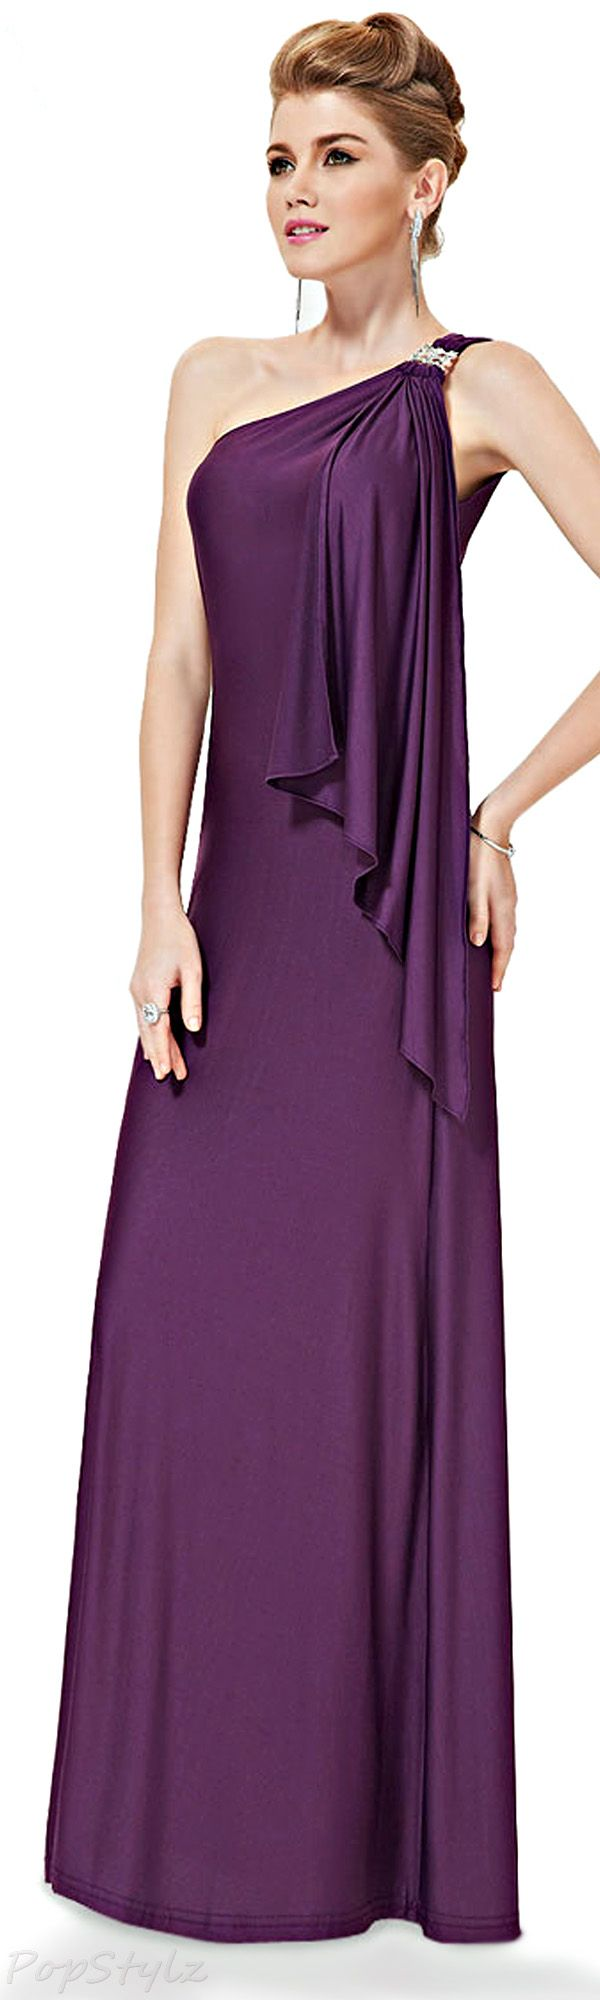 Lovely Purple Evening Gown